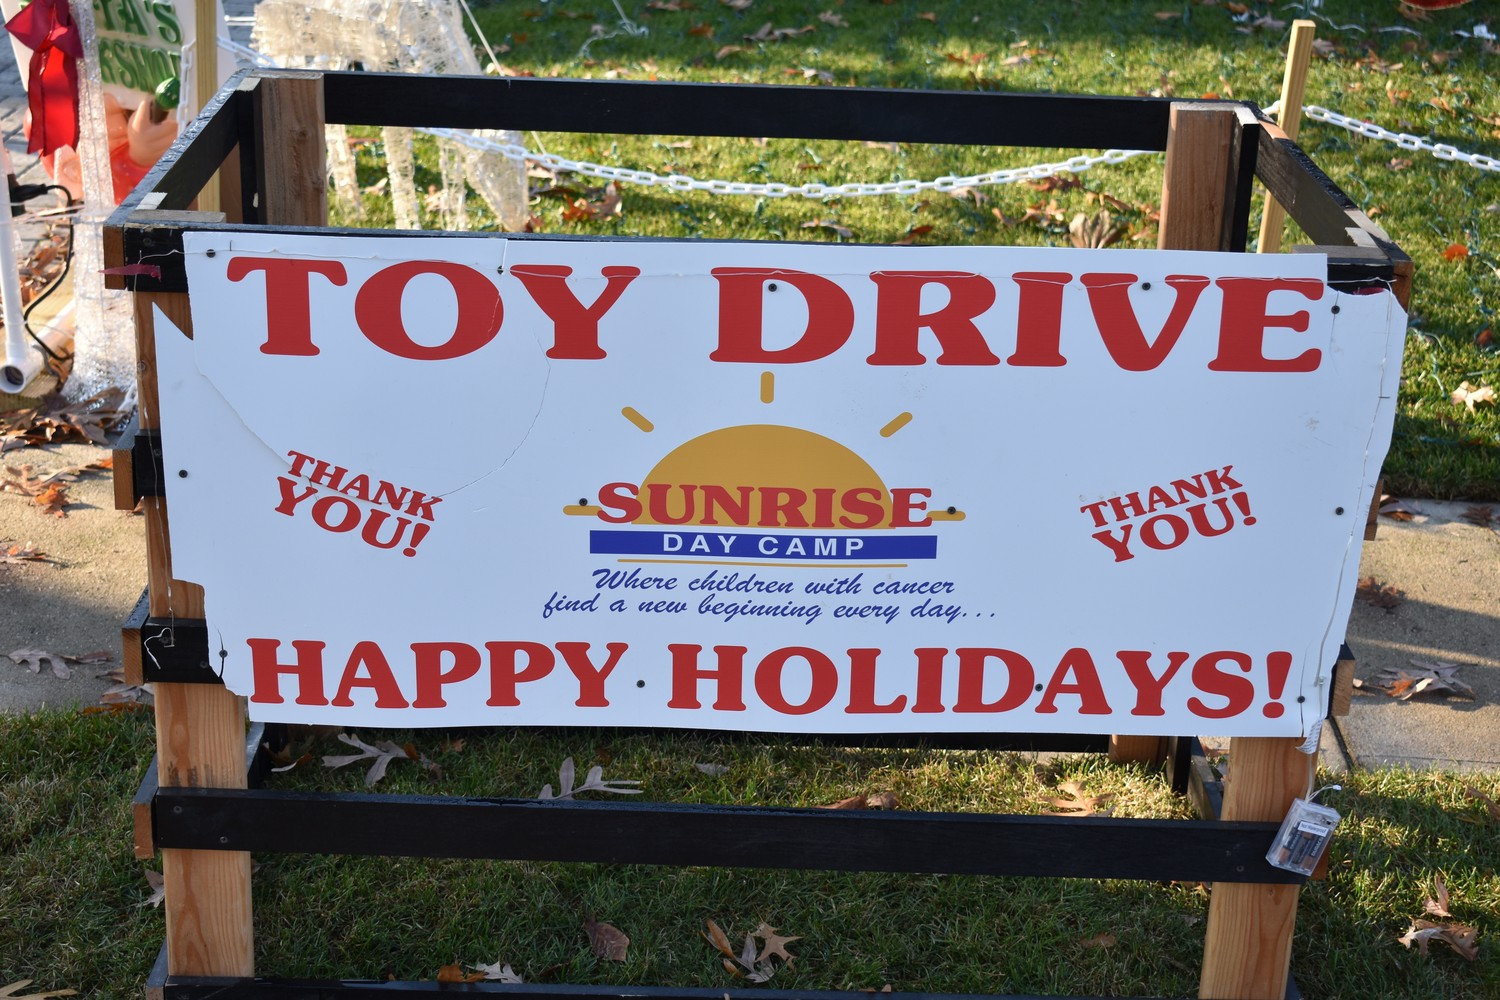 Residents are encouraged to bring new, unwrapped gifts to the curbside bin at 140 Cedar Ave. in Rockville Centre. They will be donated to children at Sunrise Day Camp.